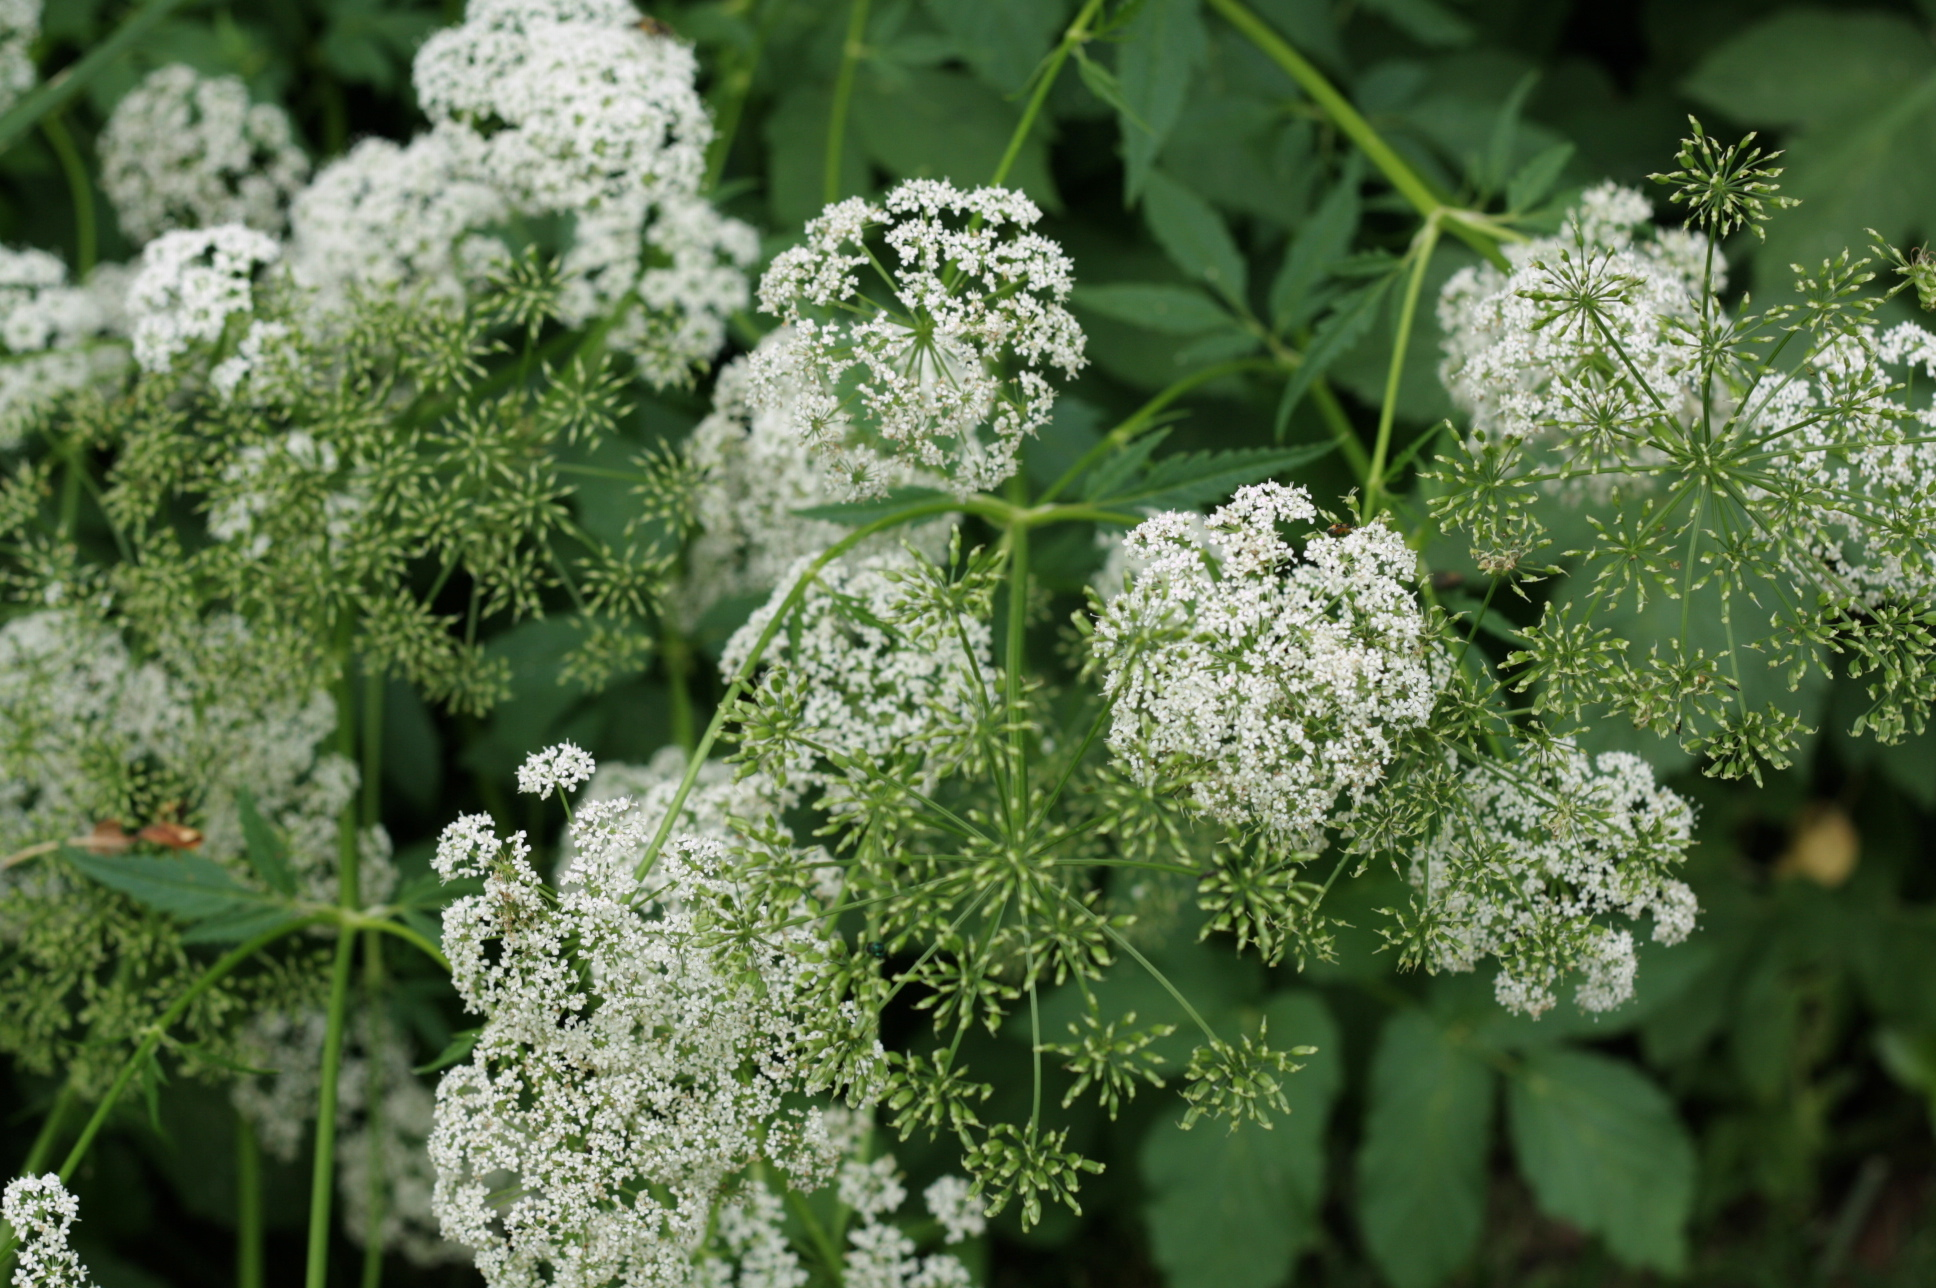 Not confirmed yet, but almost sure this is Water Hemlock (scary!).